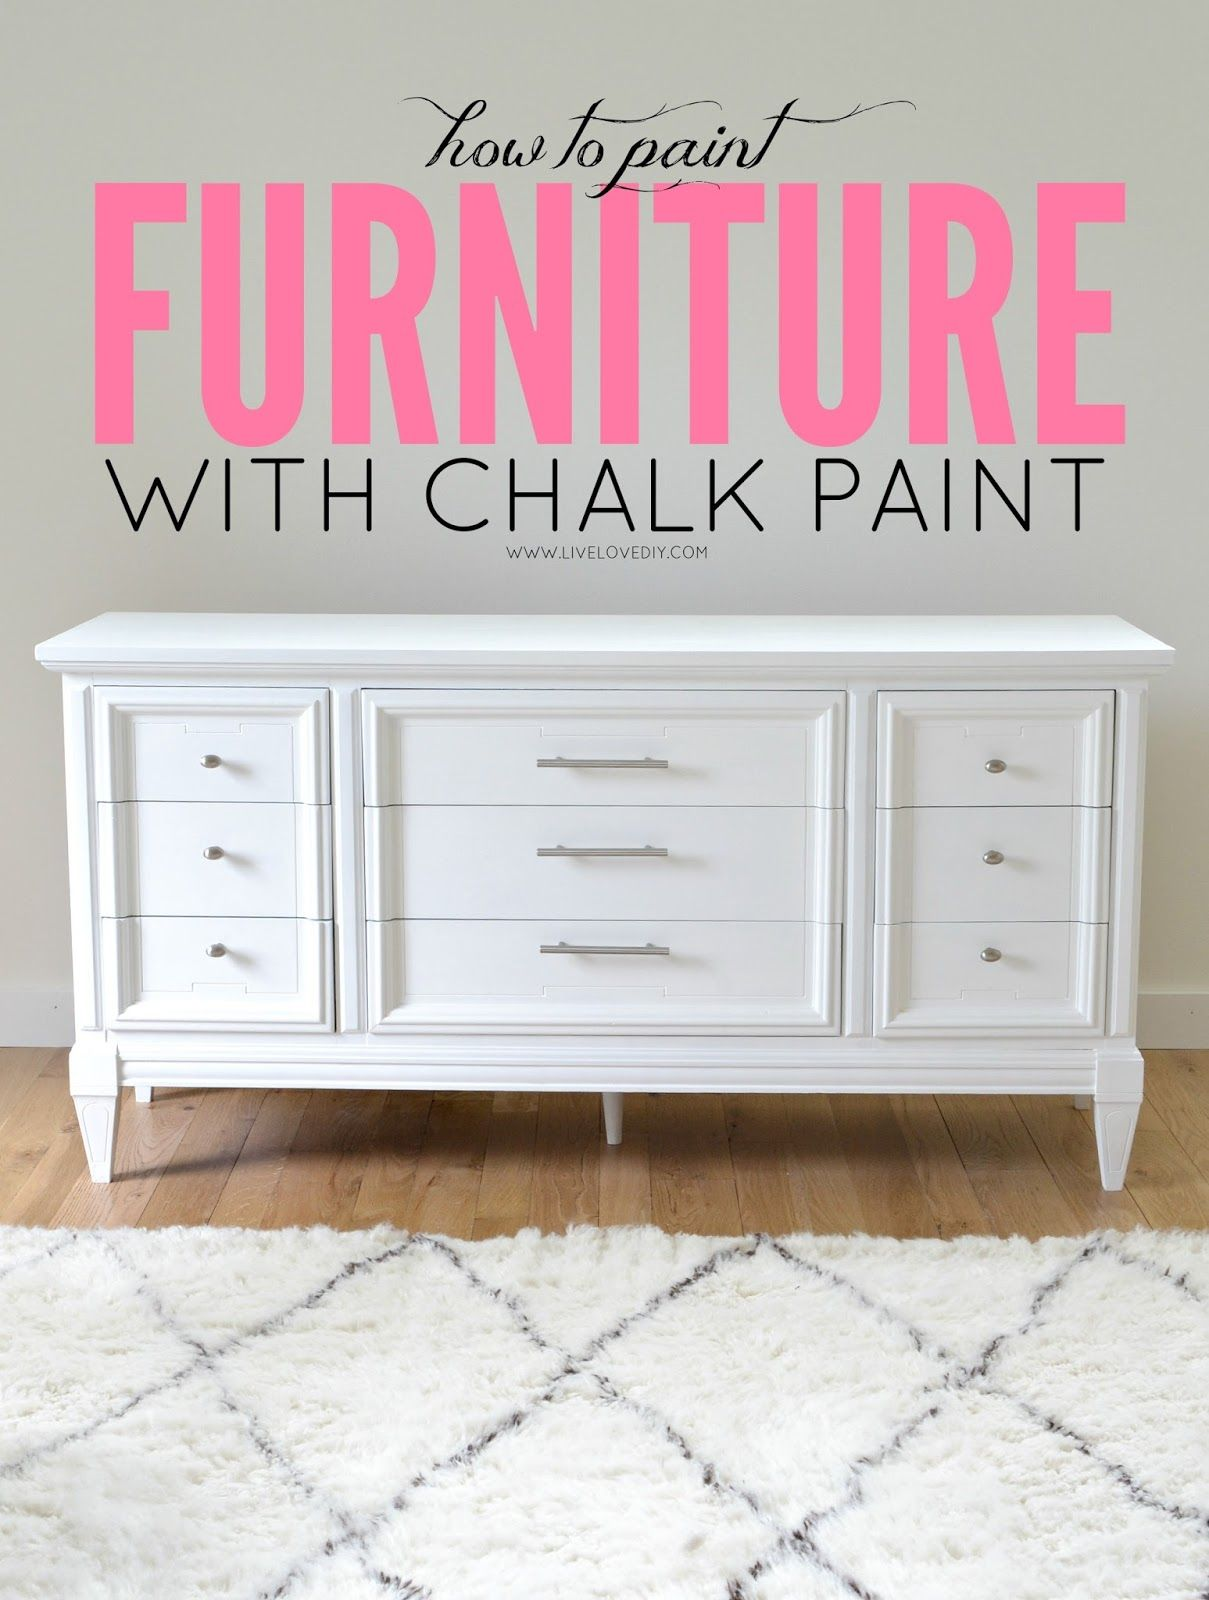 How To Paint Furniture With Chalk Paint And How To Survive A Diy Disaster Livelovediy Painting Laminate Furniture Redo Furniture Furniture Diy